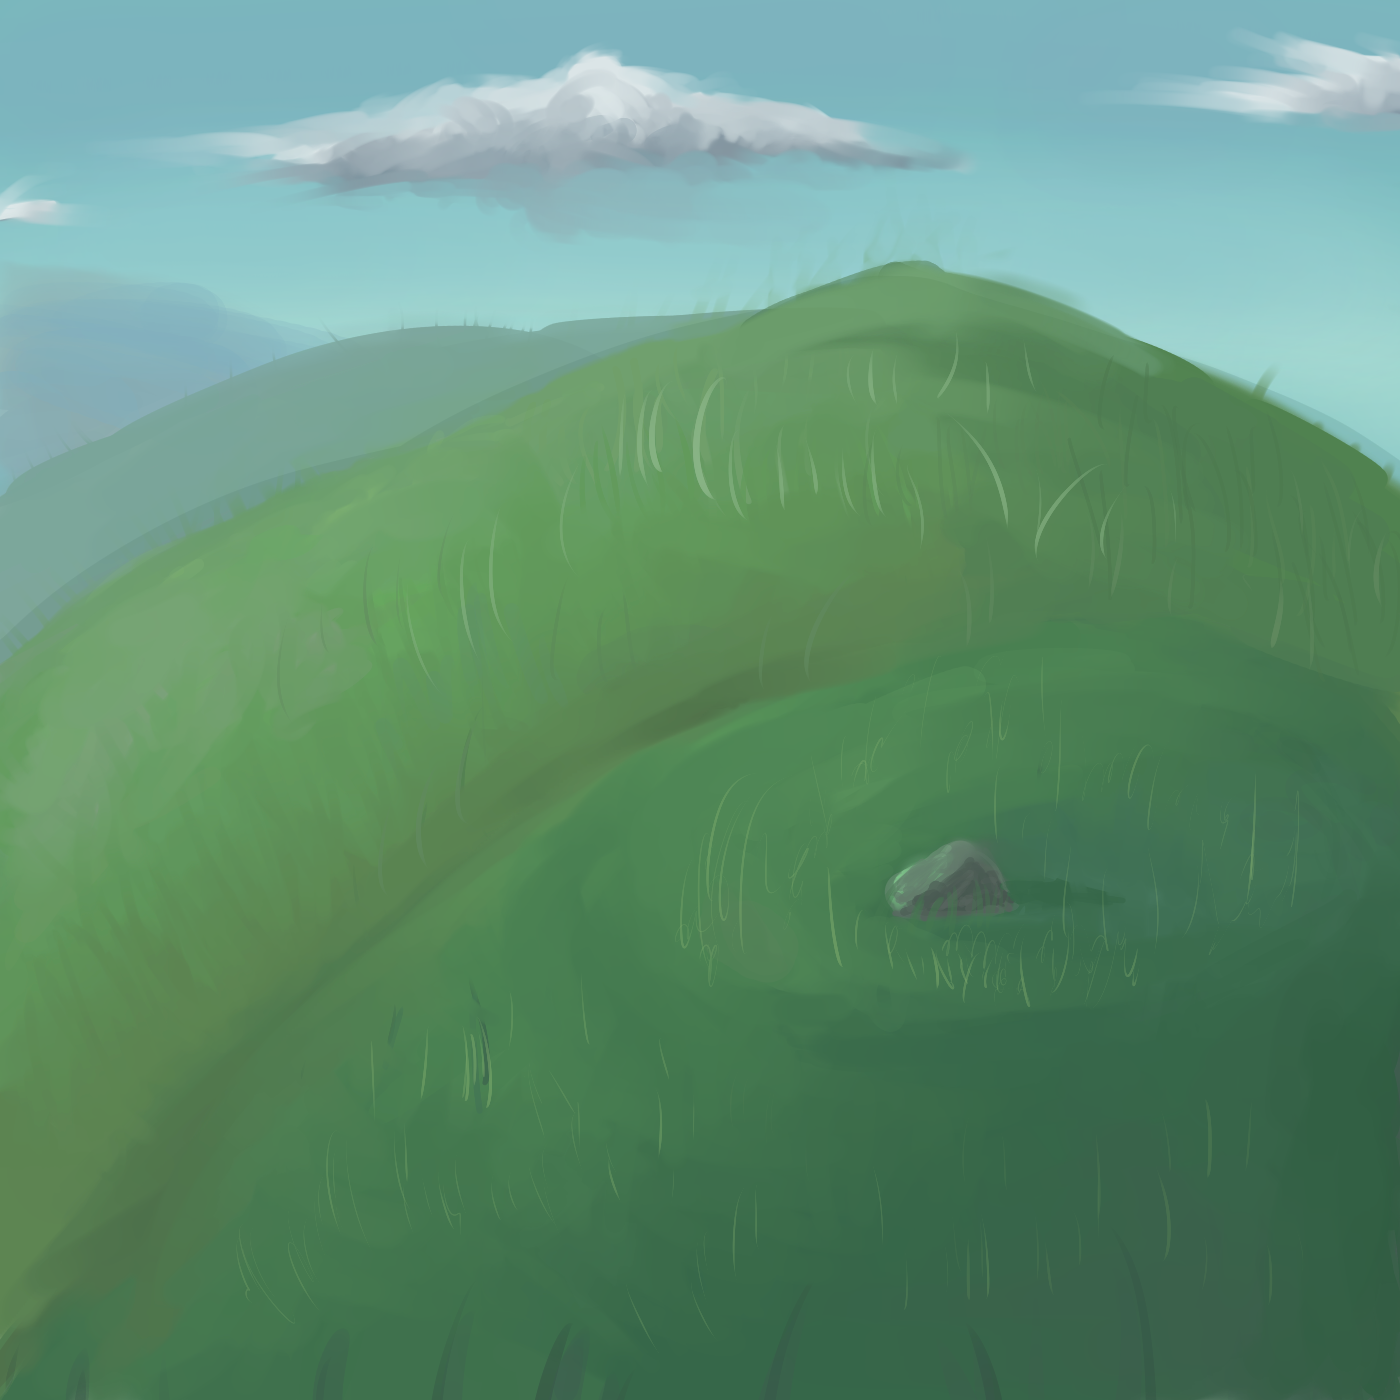 Hill and grass study